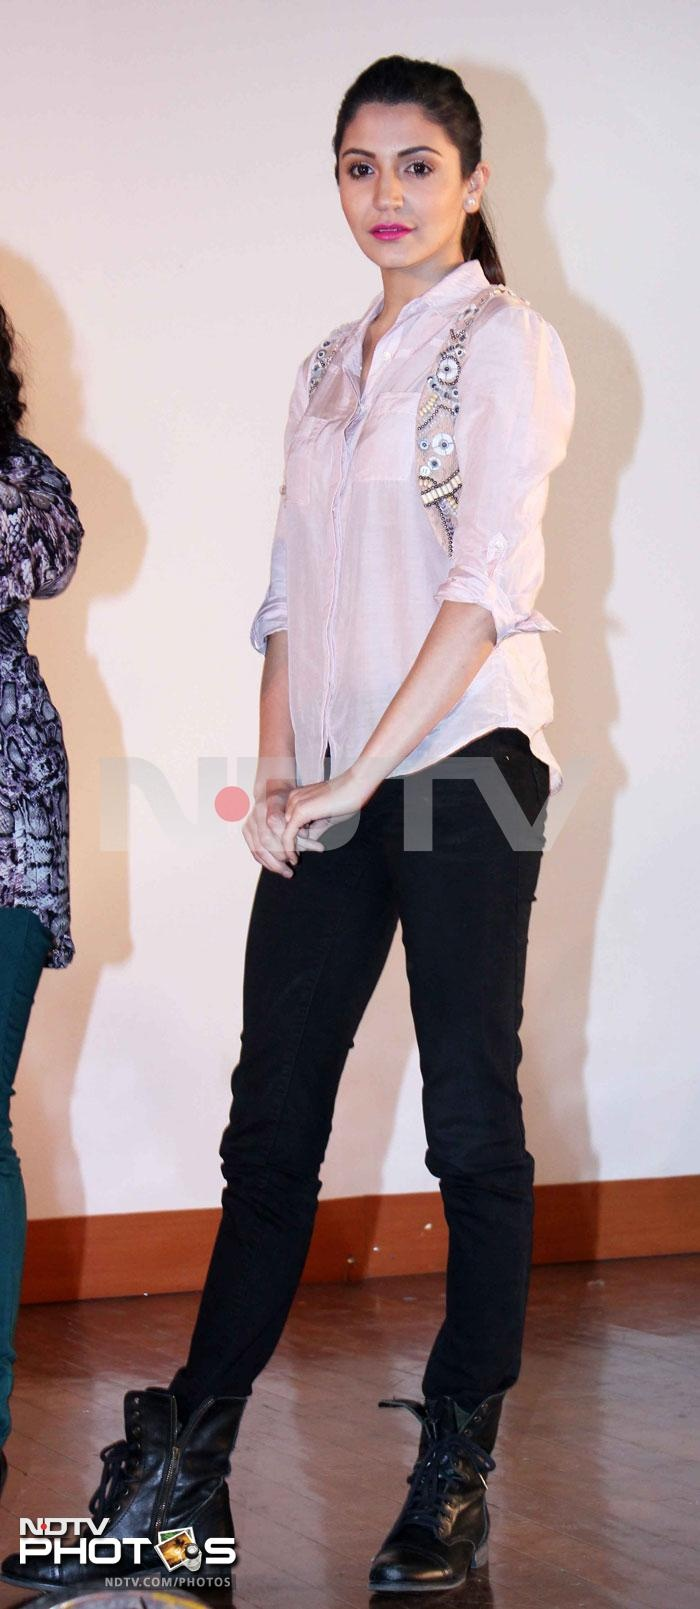 Anushka Sharma was casual chic in a pink shirt and black denims. Pink lips and a ponytail completed her look.